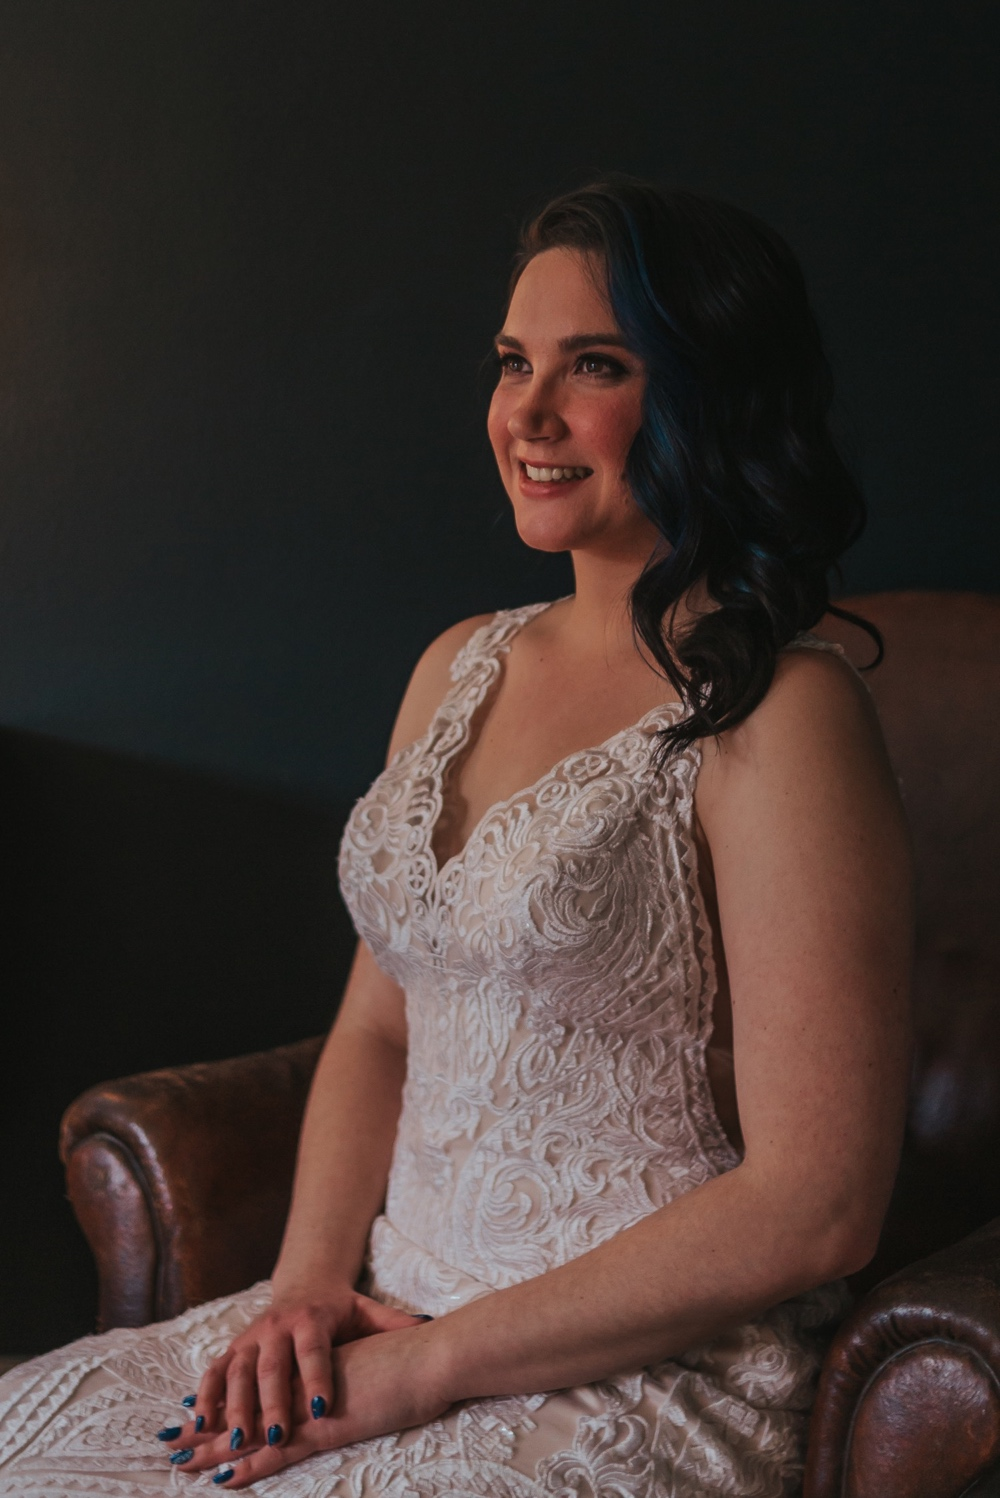 042_Katie&Roy3.23.19-1683_the-colony-wedding-venue_best-portland-wedding-photographers_downtown-portland-wedding-photographers_-_portland-wedding-photographers-prices_the-colony-wedding-venue-portland.jpg